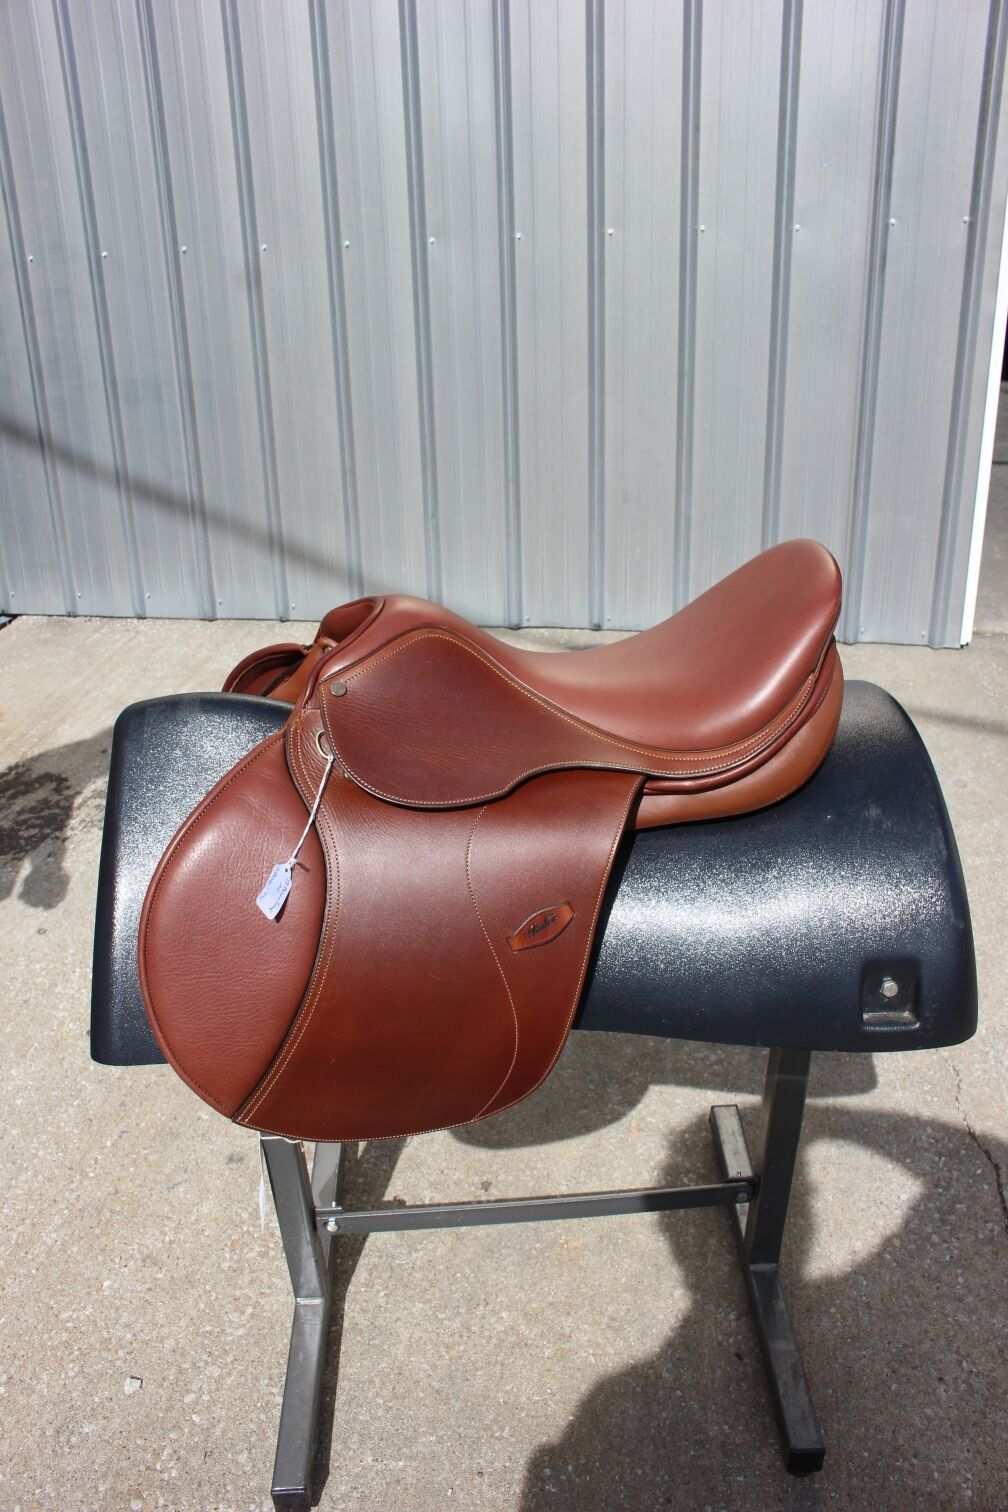 36-9 Spirig 17.5   Rider English saddle 30 medium wide tree  various sizes